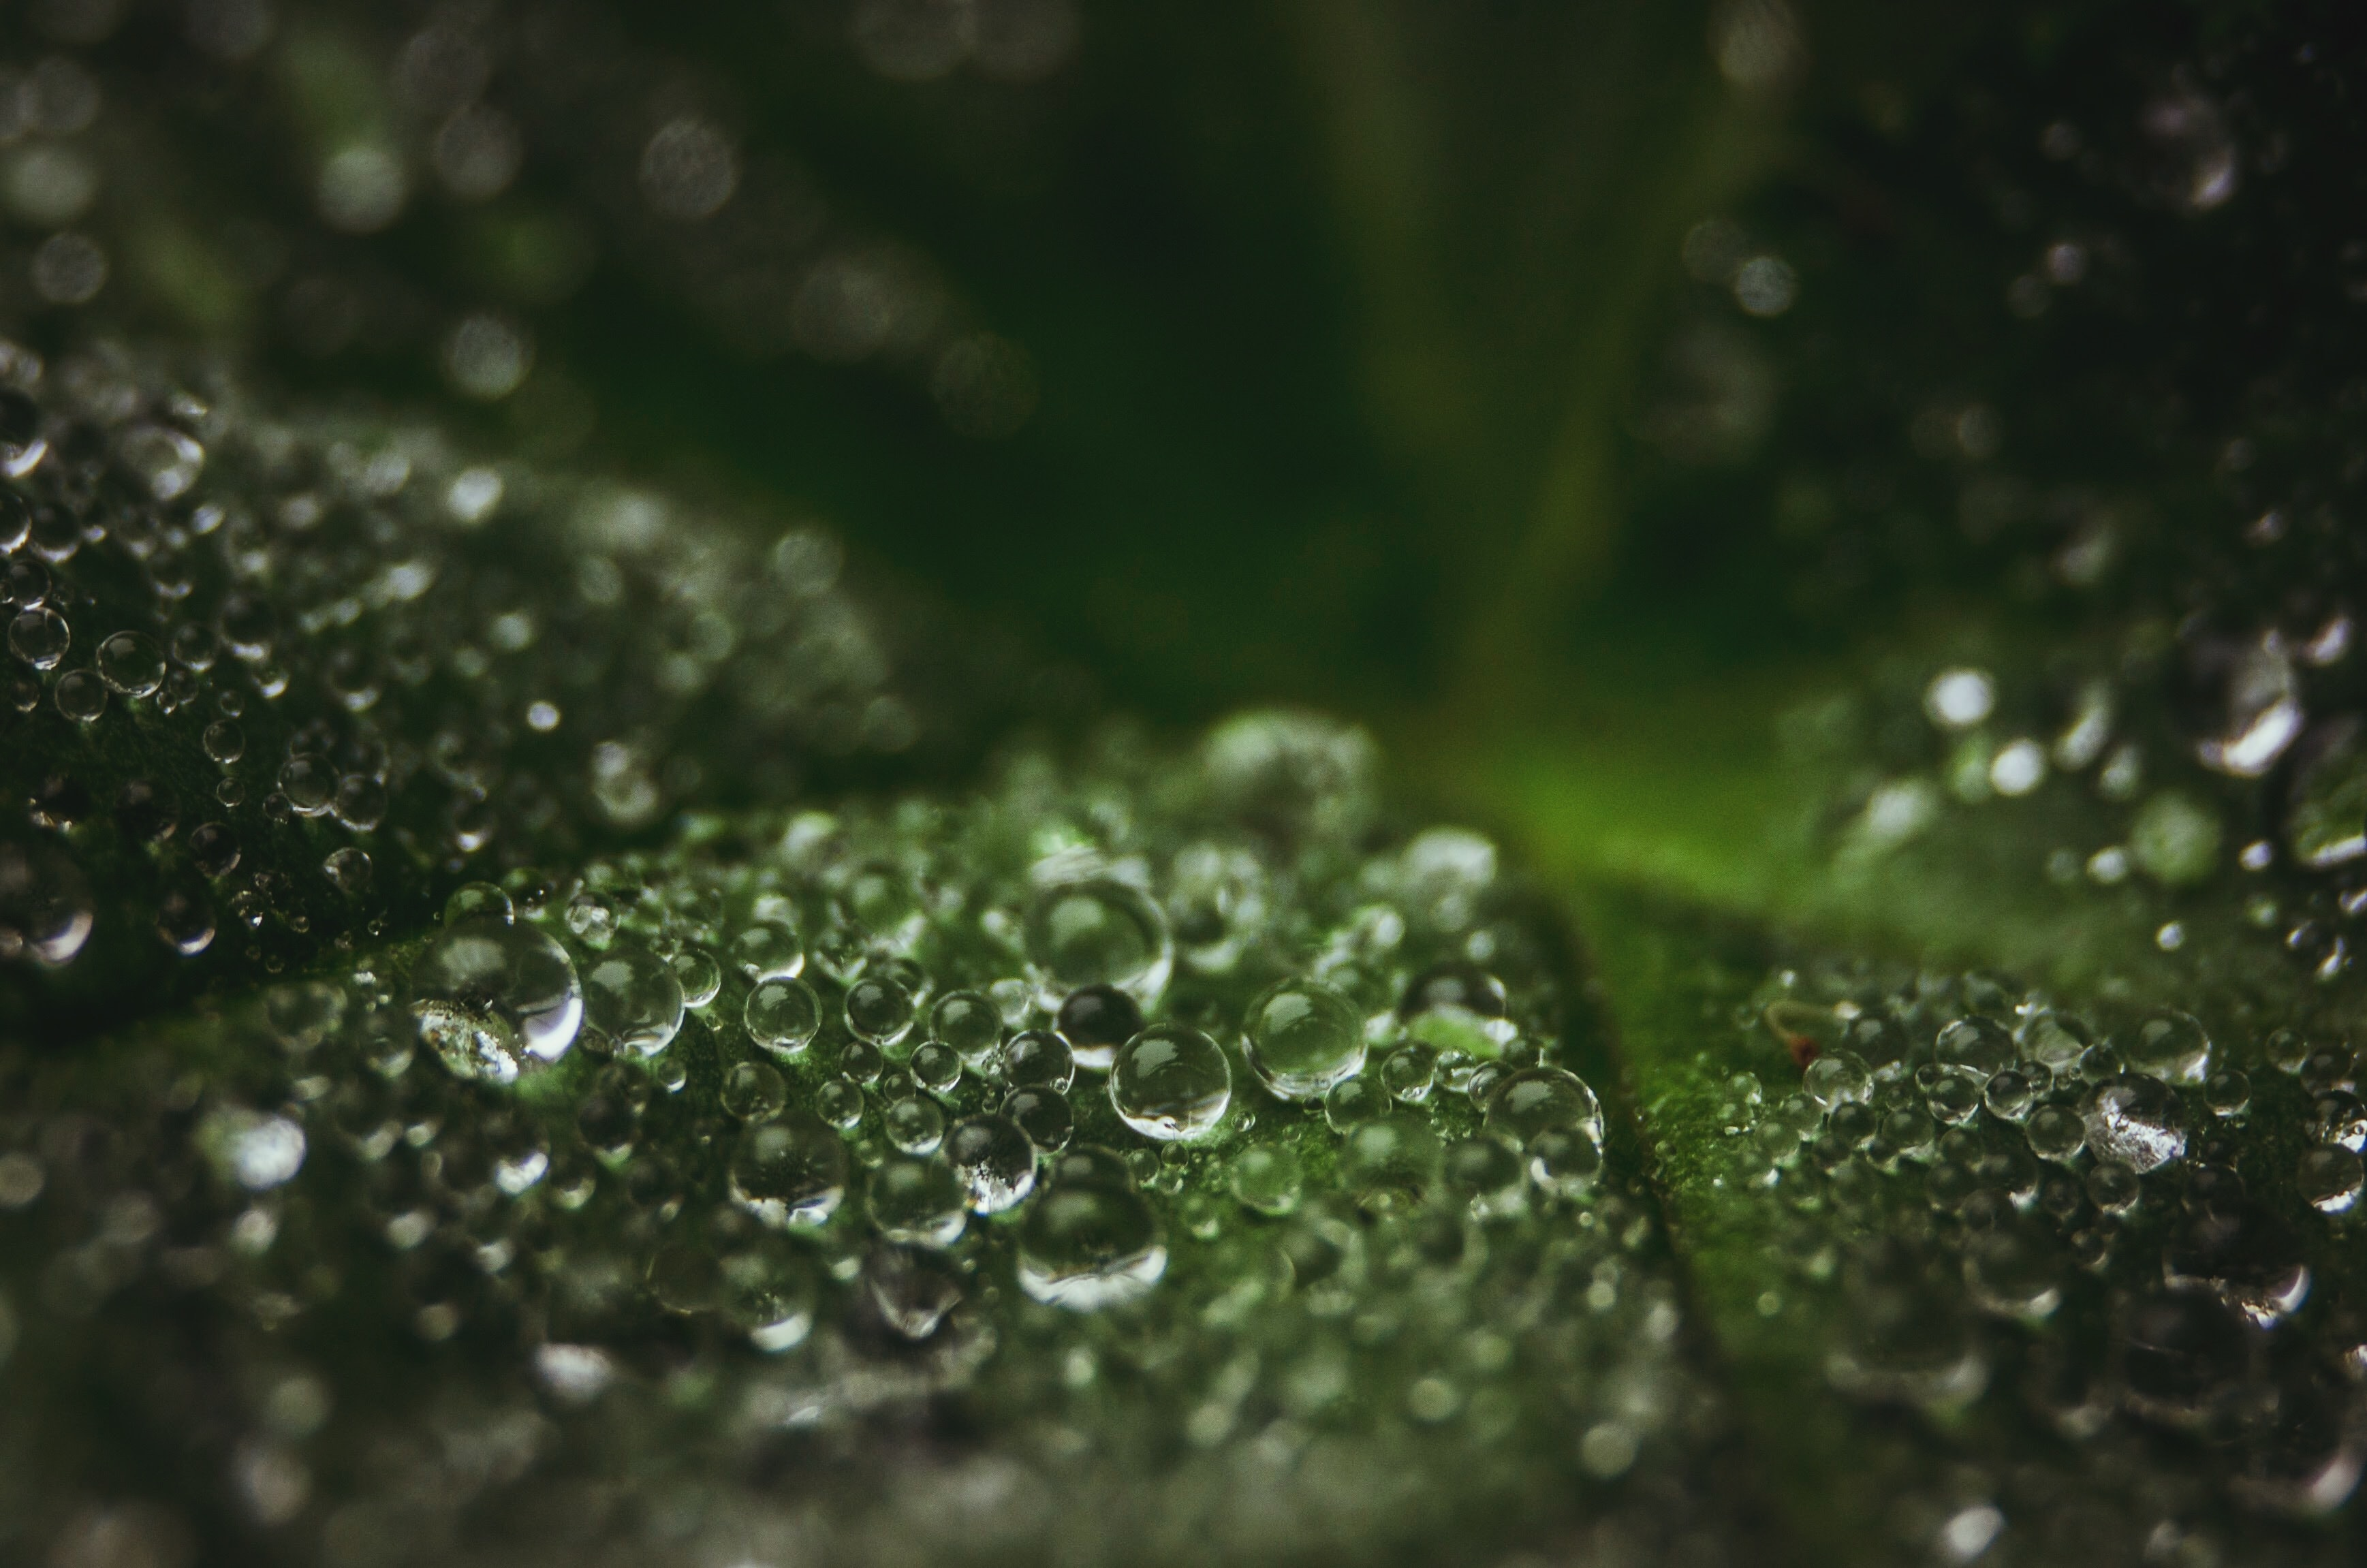 macrophotograph of water dew on green leaf